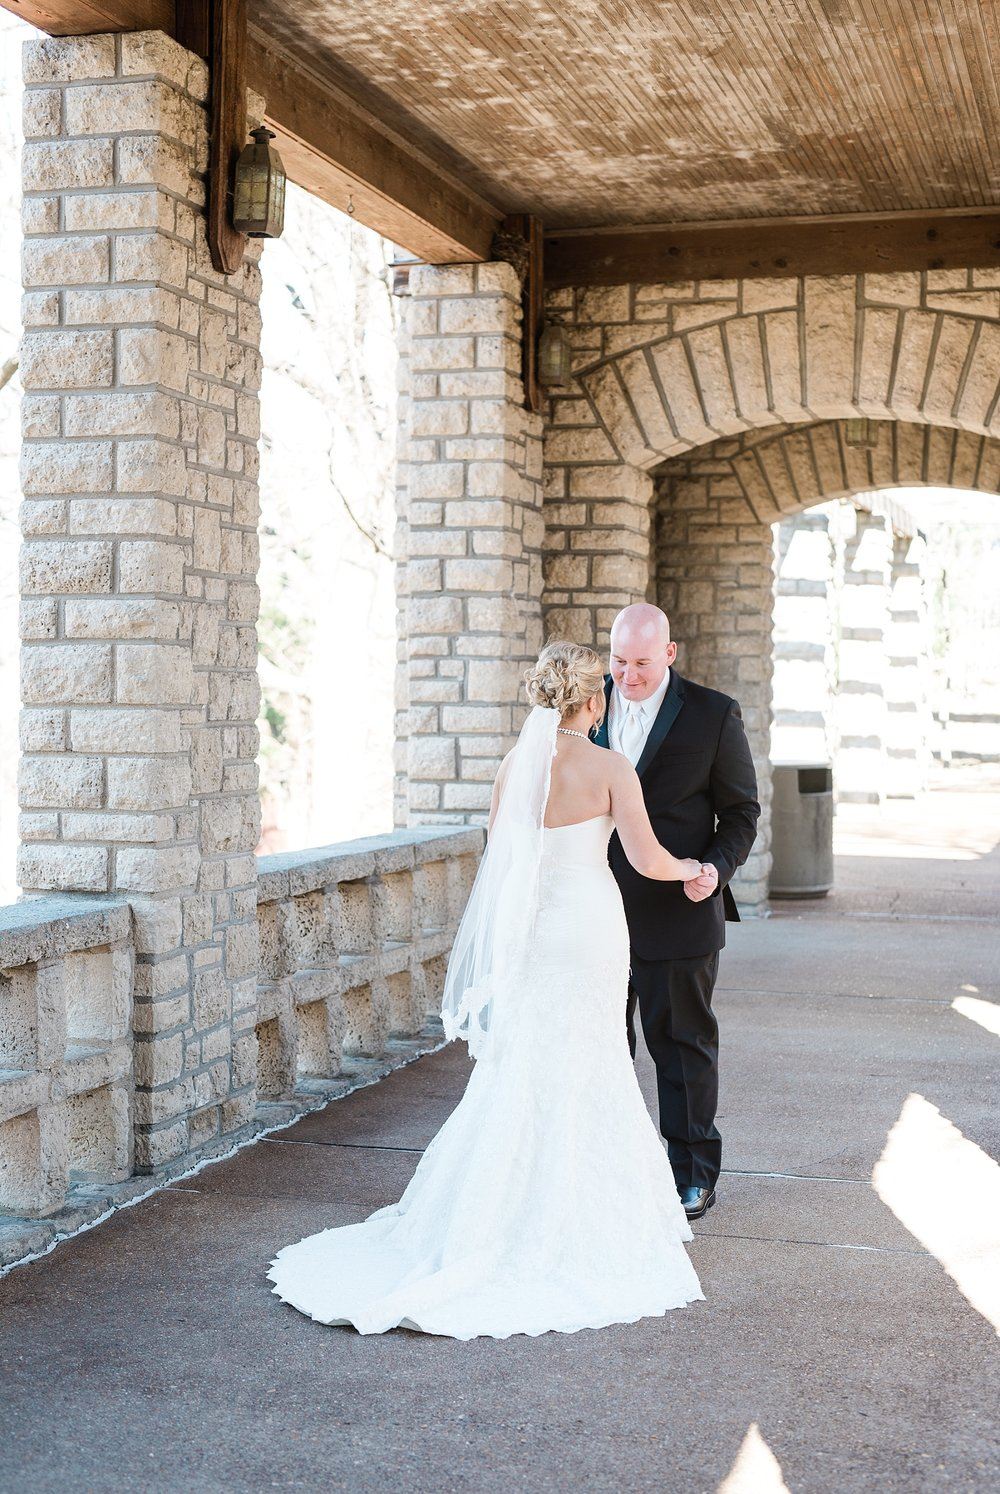 Light and Airy Spring Wedding Downtown Jefferson City Missouri State Capitol Millbottom_0008.jpg